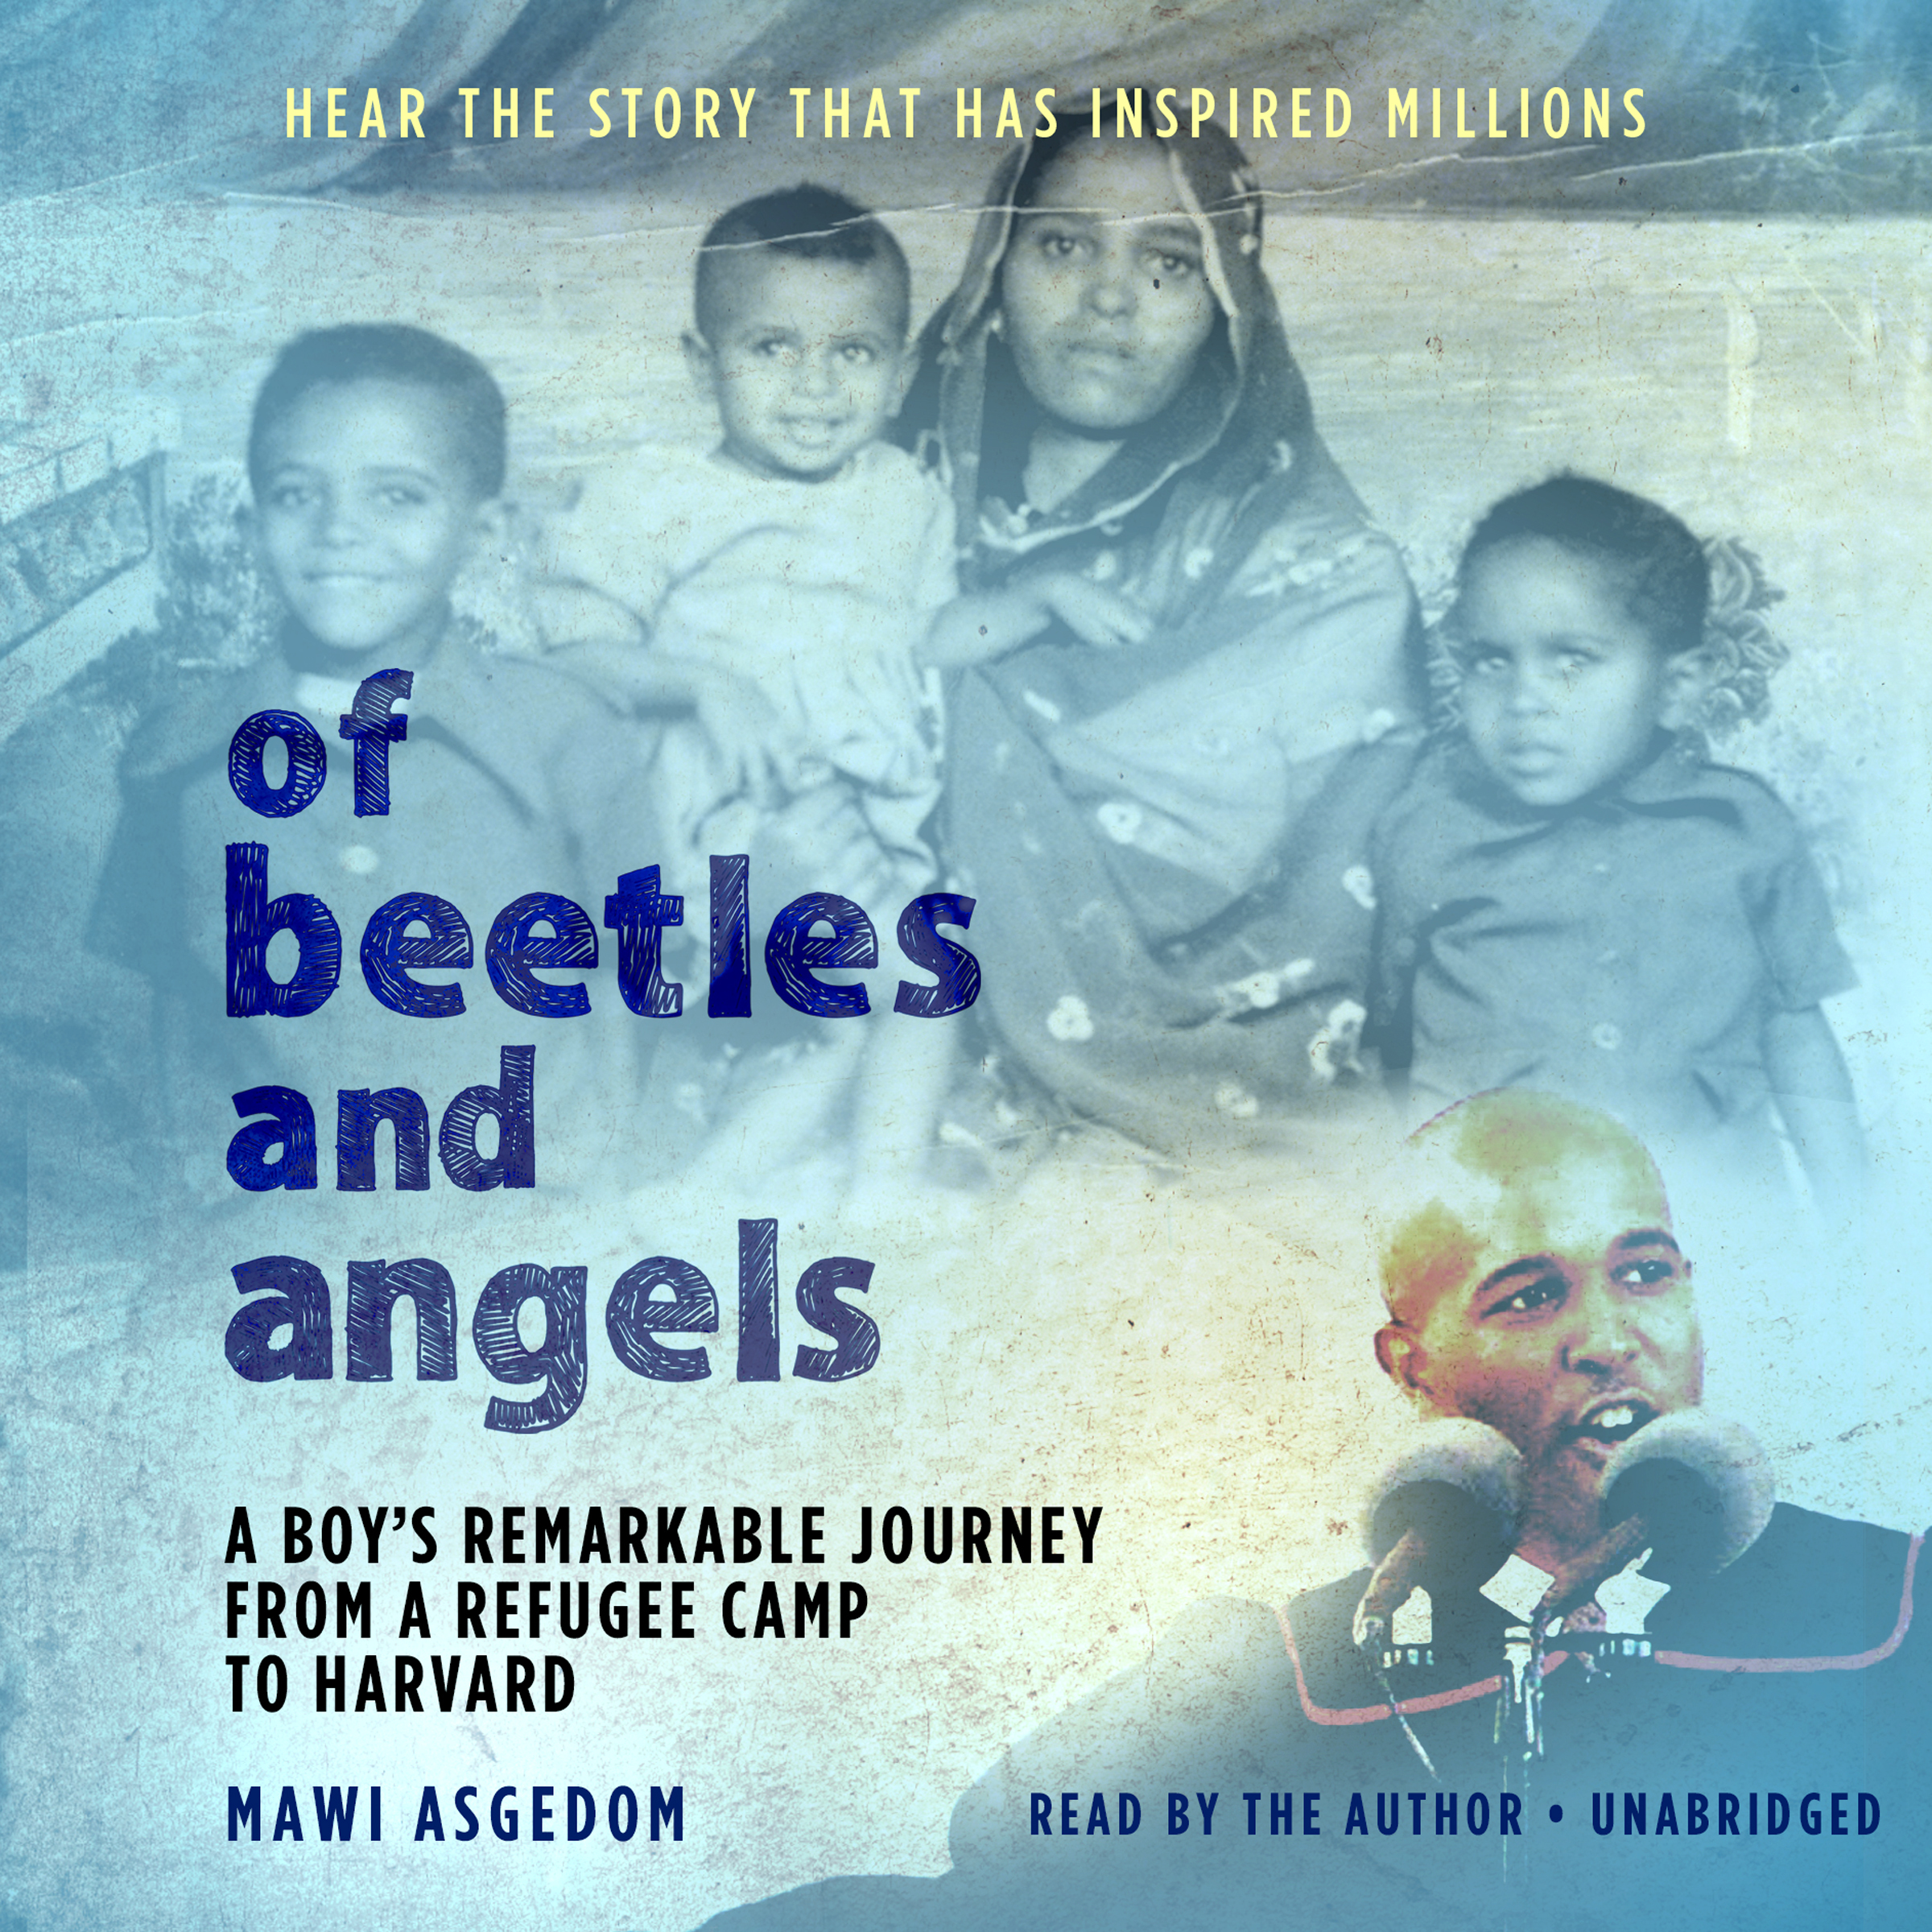 Hear Of Beetles and Angels Audiobook by Mawi Asgedom for just $5.95